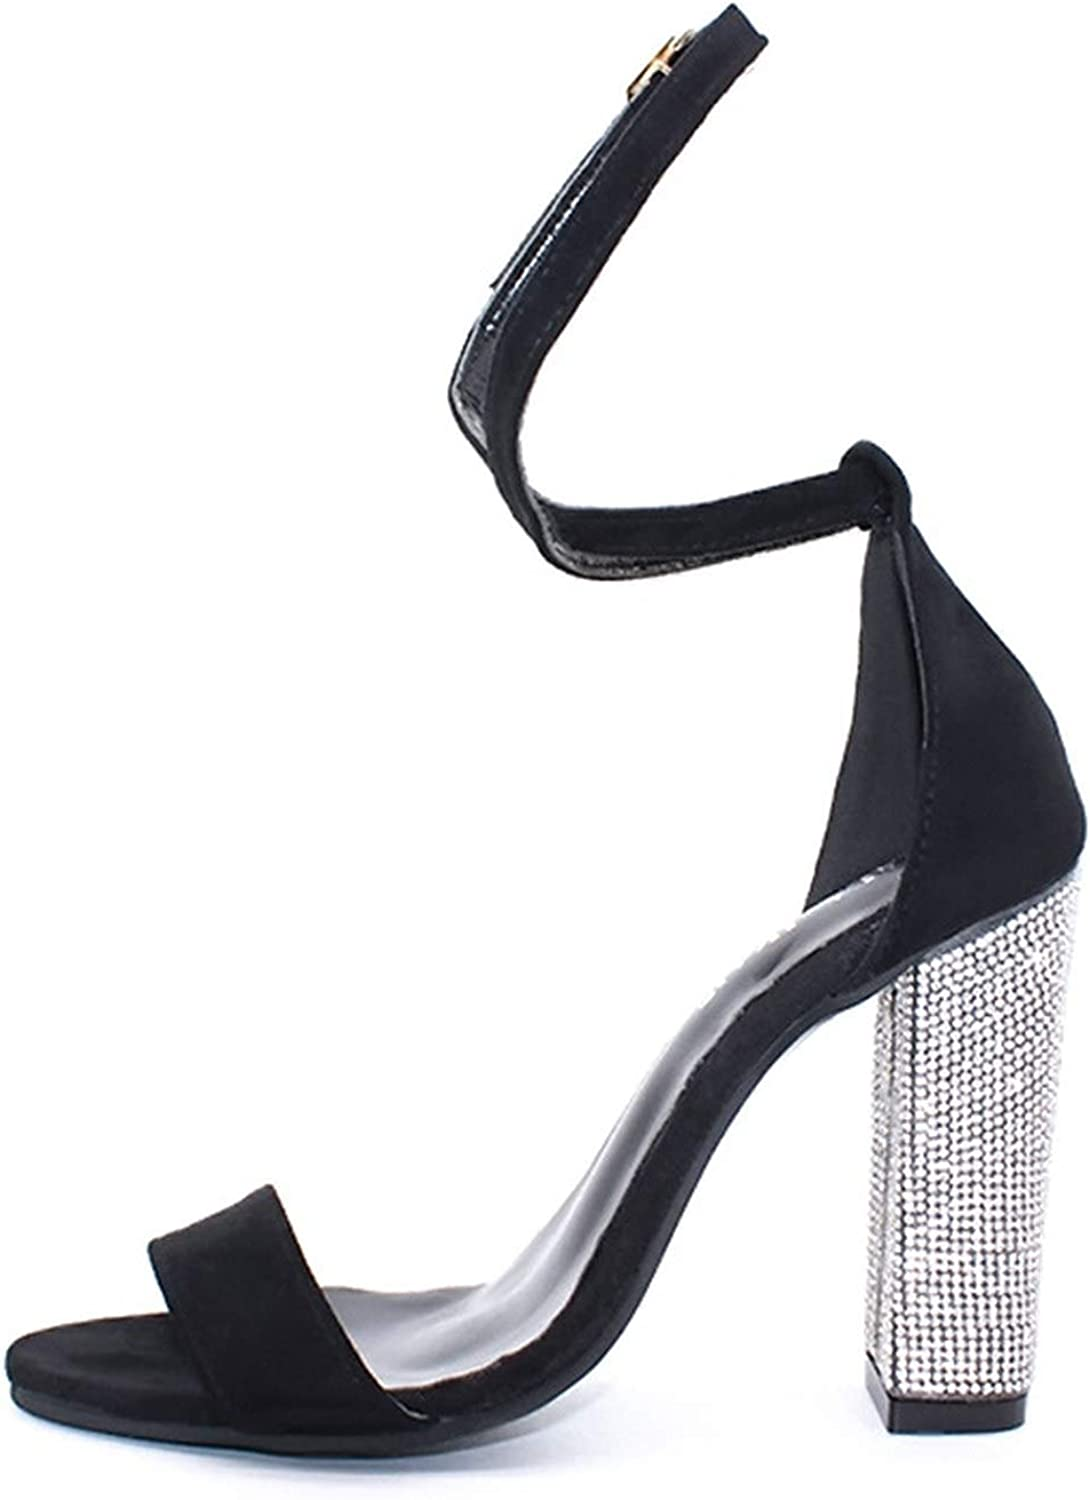 Sexy Sandals High-Heel Summer Crystal Party shoes Buckle Strap Low-Cut Sandals